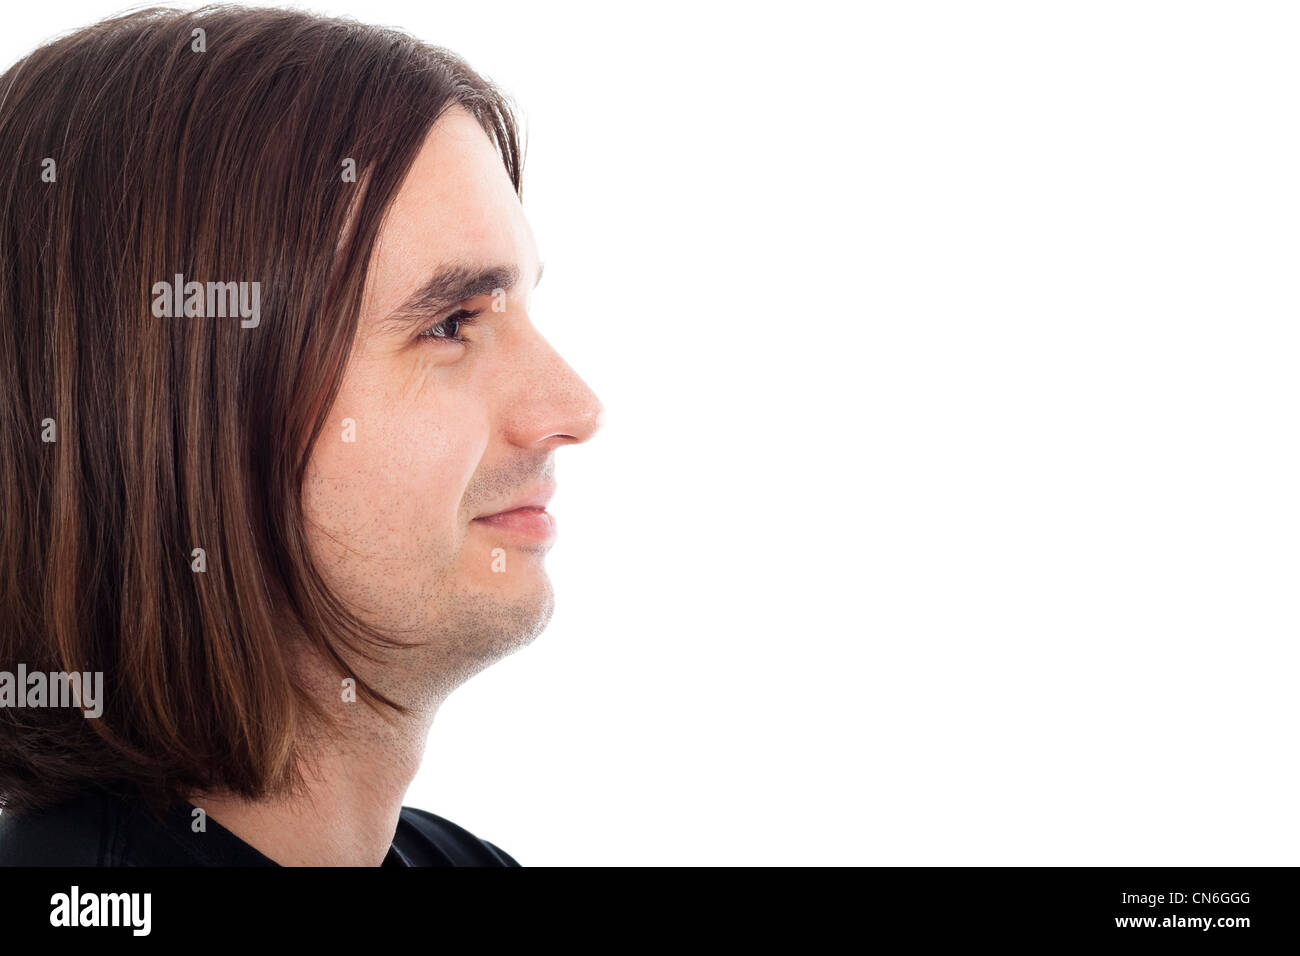 Profile of young long haired man neutral smiling relaxed face, isolated on white background with large copy space. - Stock Image